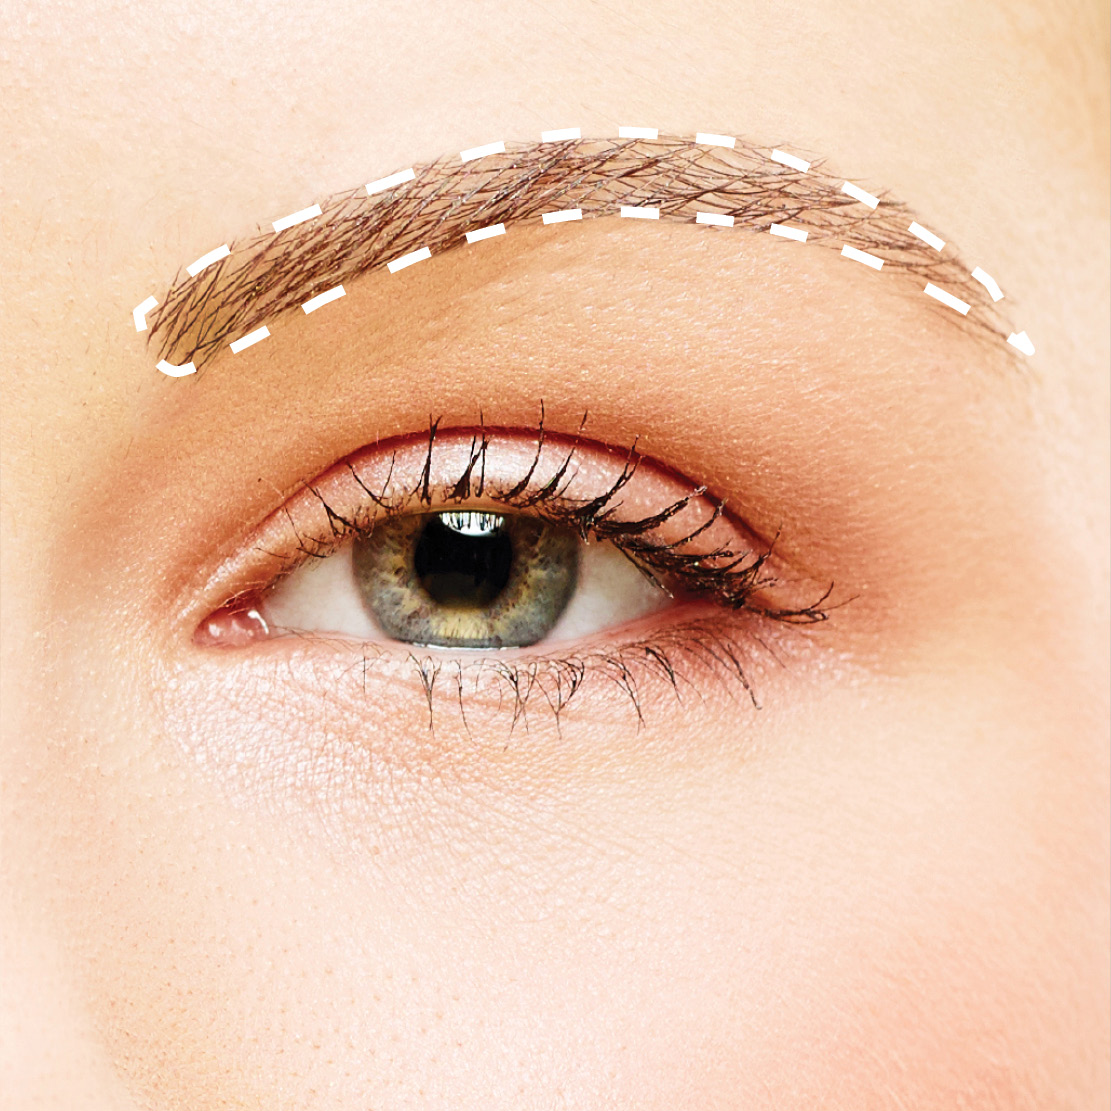 The Refined Brow: A narrow, defined brow with rounded angles and a high, soft arch.